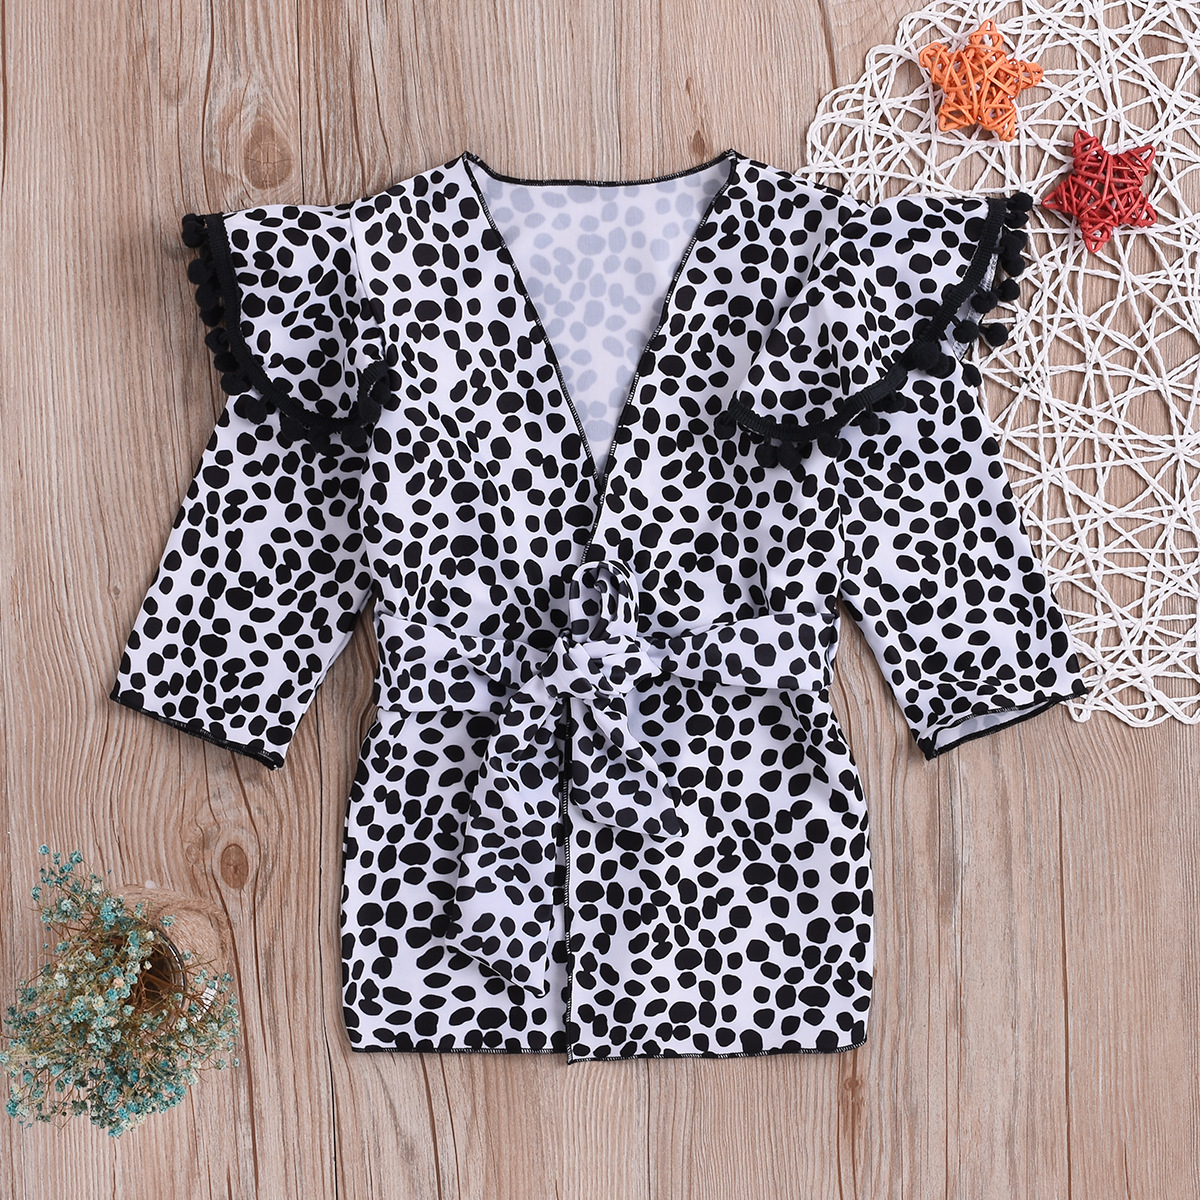 New Style Beach Sun-resistant Service Bikini Cover-up Leopord Pattern Sun-resistant Cardigan Beach Cover-up Shawl GIRL'S Swimsui